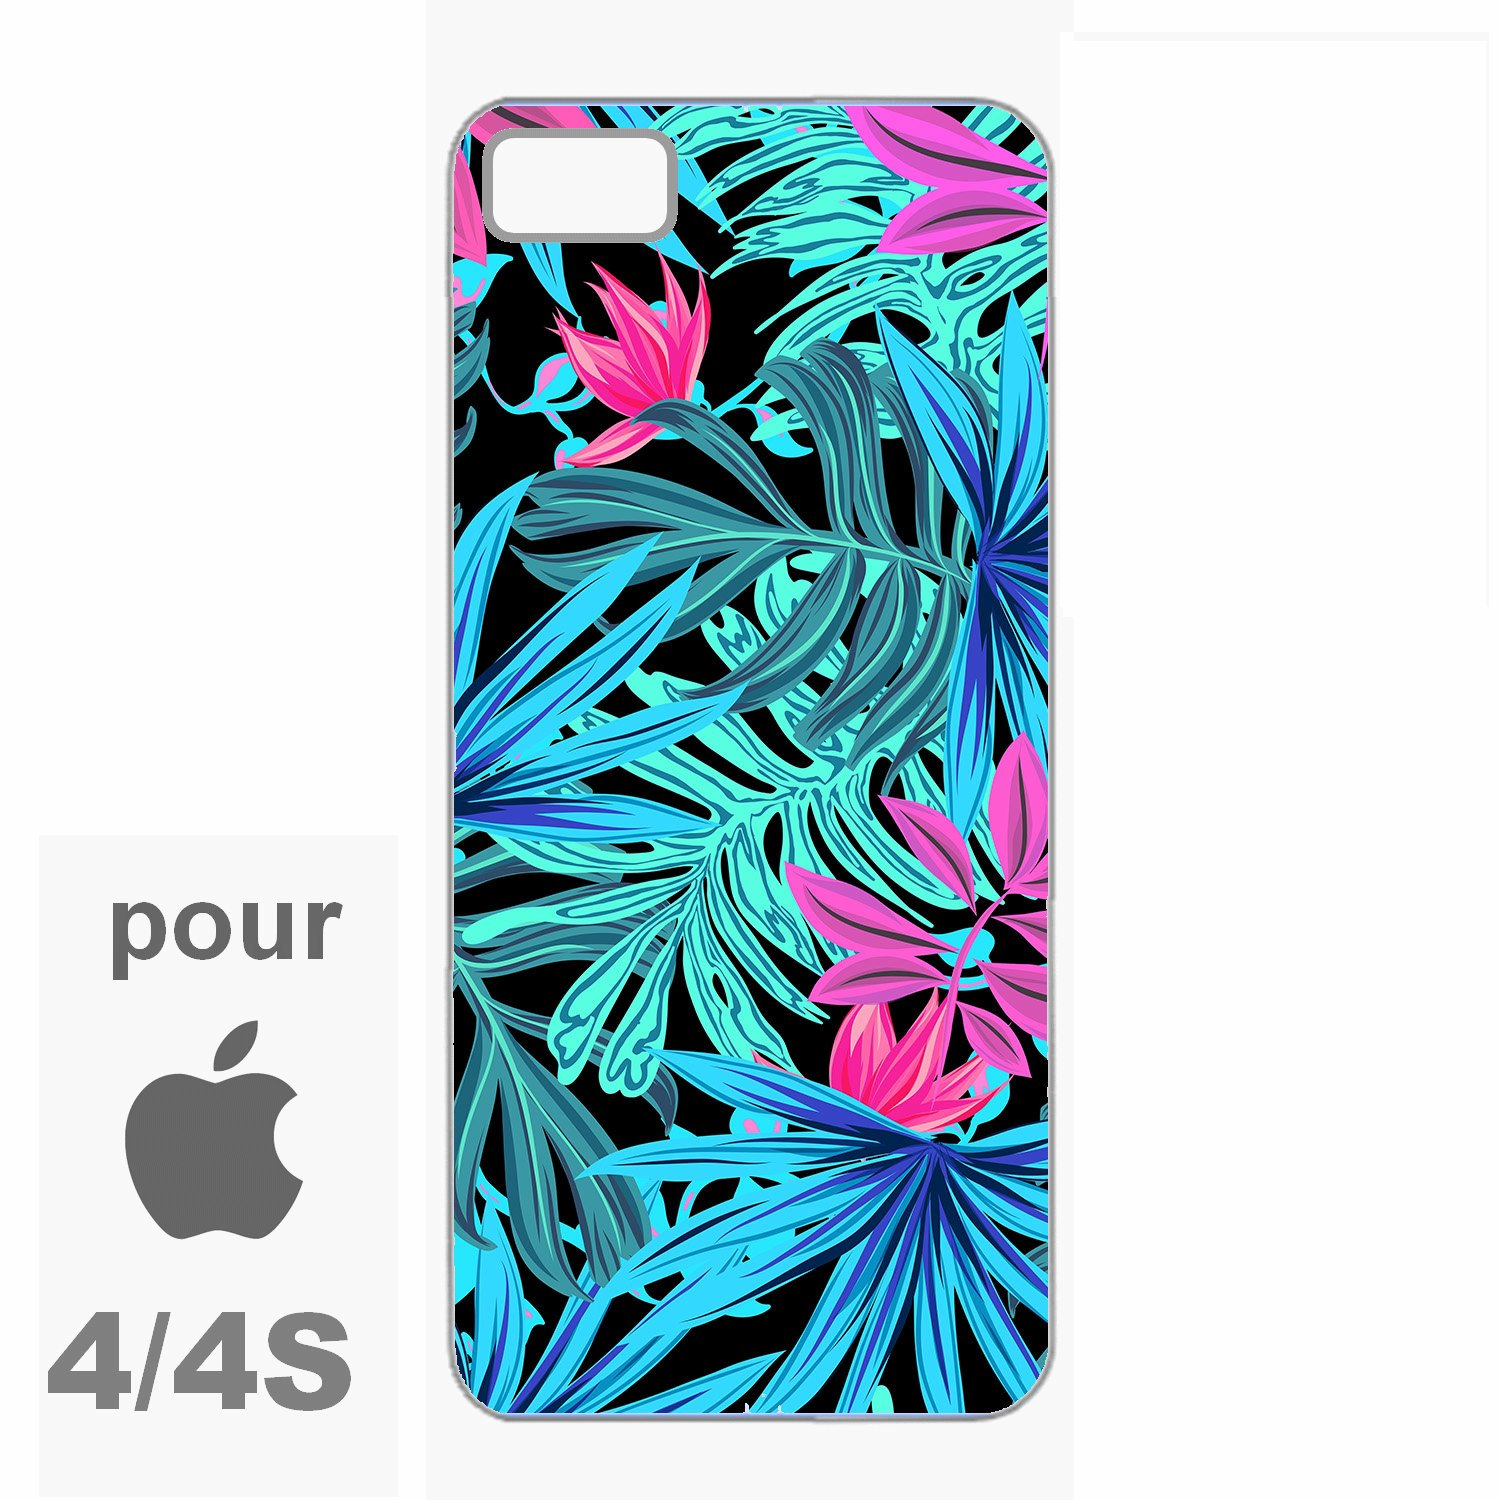 coque iphone 4 couleur